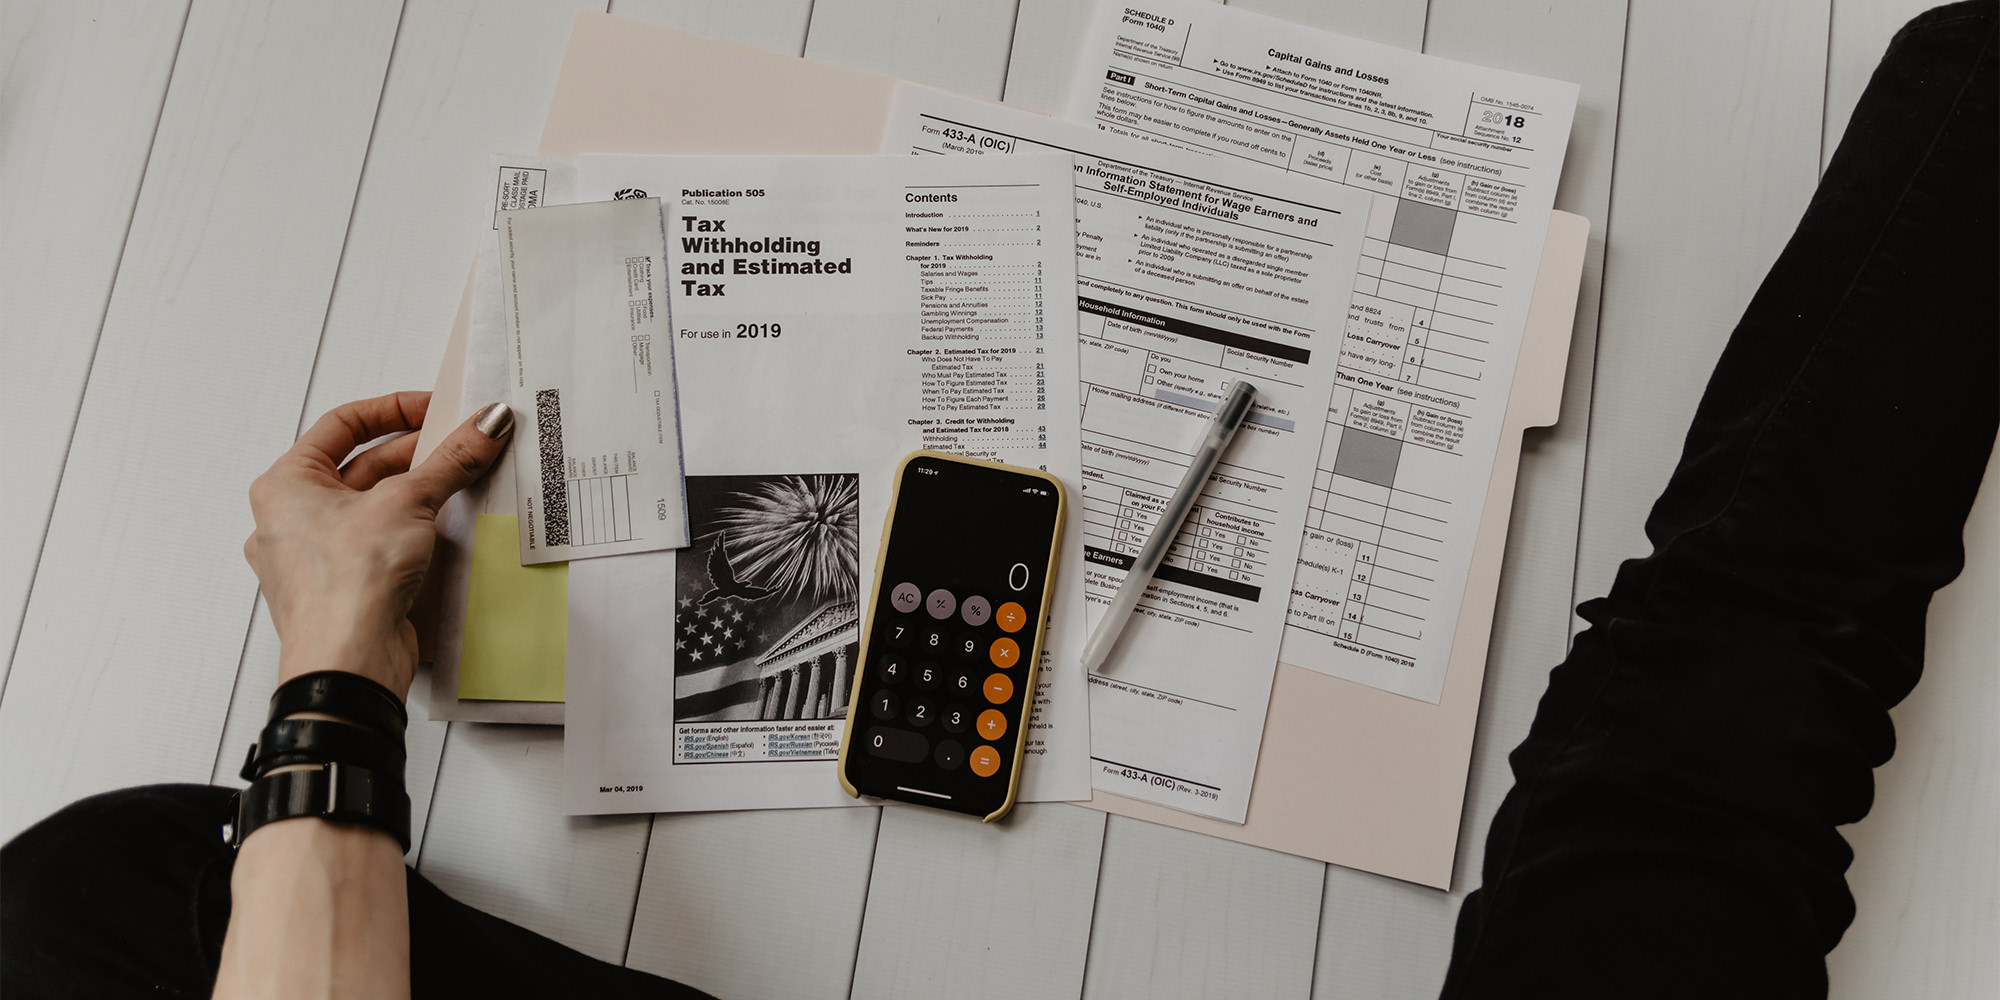 A close-up of someone sitting on the floor, with an arrangement of financials and tax return documents and their phone set to the calculator mode. It's a close-up showing just their arm and legs. They have white skin and are wearing a black leather bracelet, nail polish, and black skinny jeans.